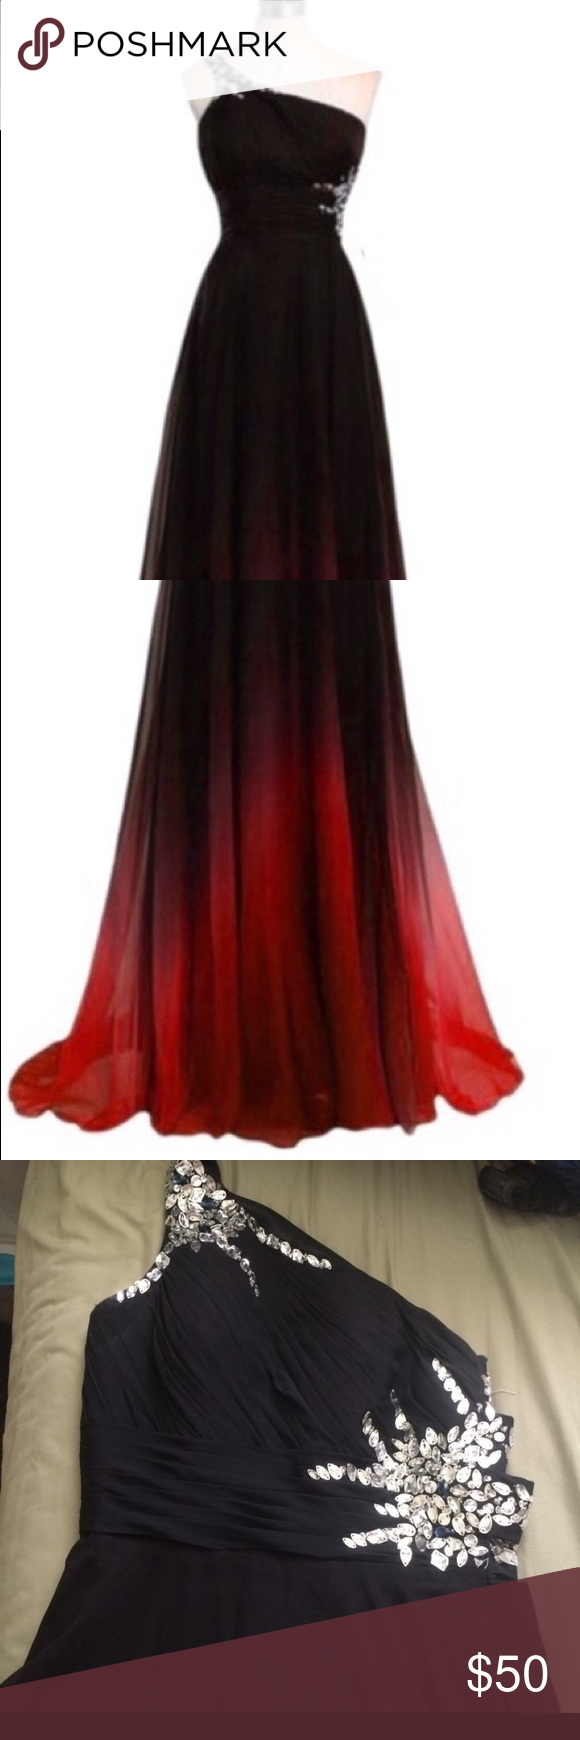 Black and red ombre prom dress red and black ombre prom dress w